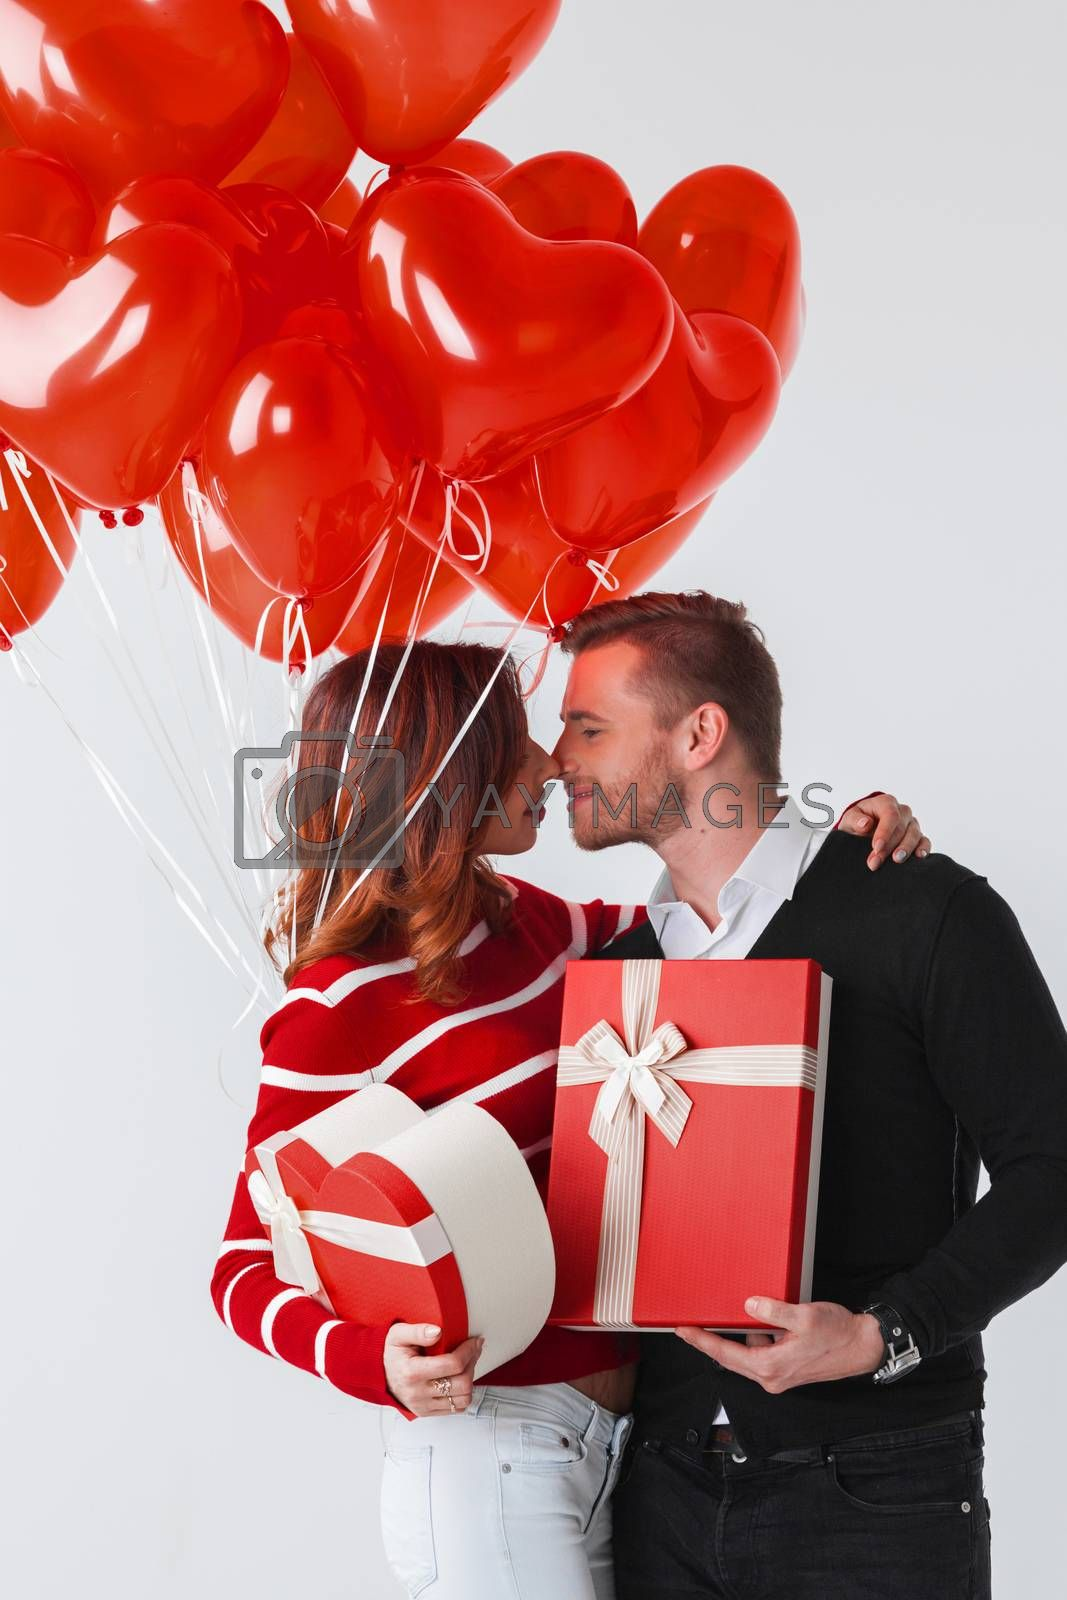 Happy smiling couple holding valentines day gifts and red balloons on white background